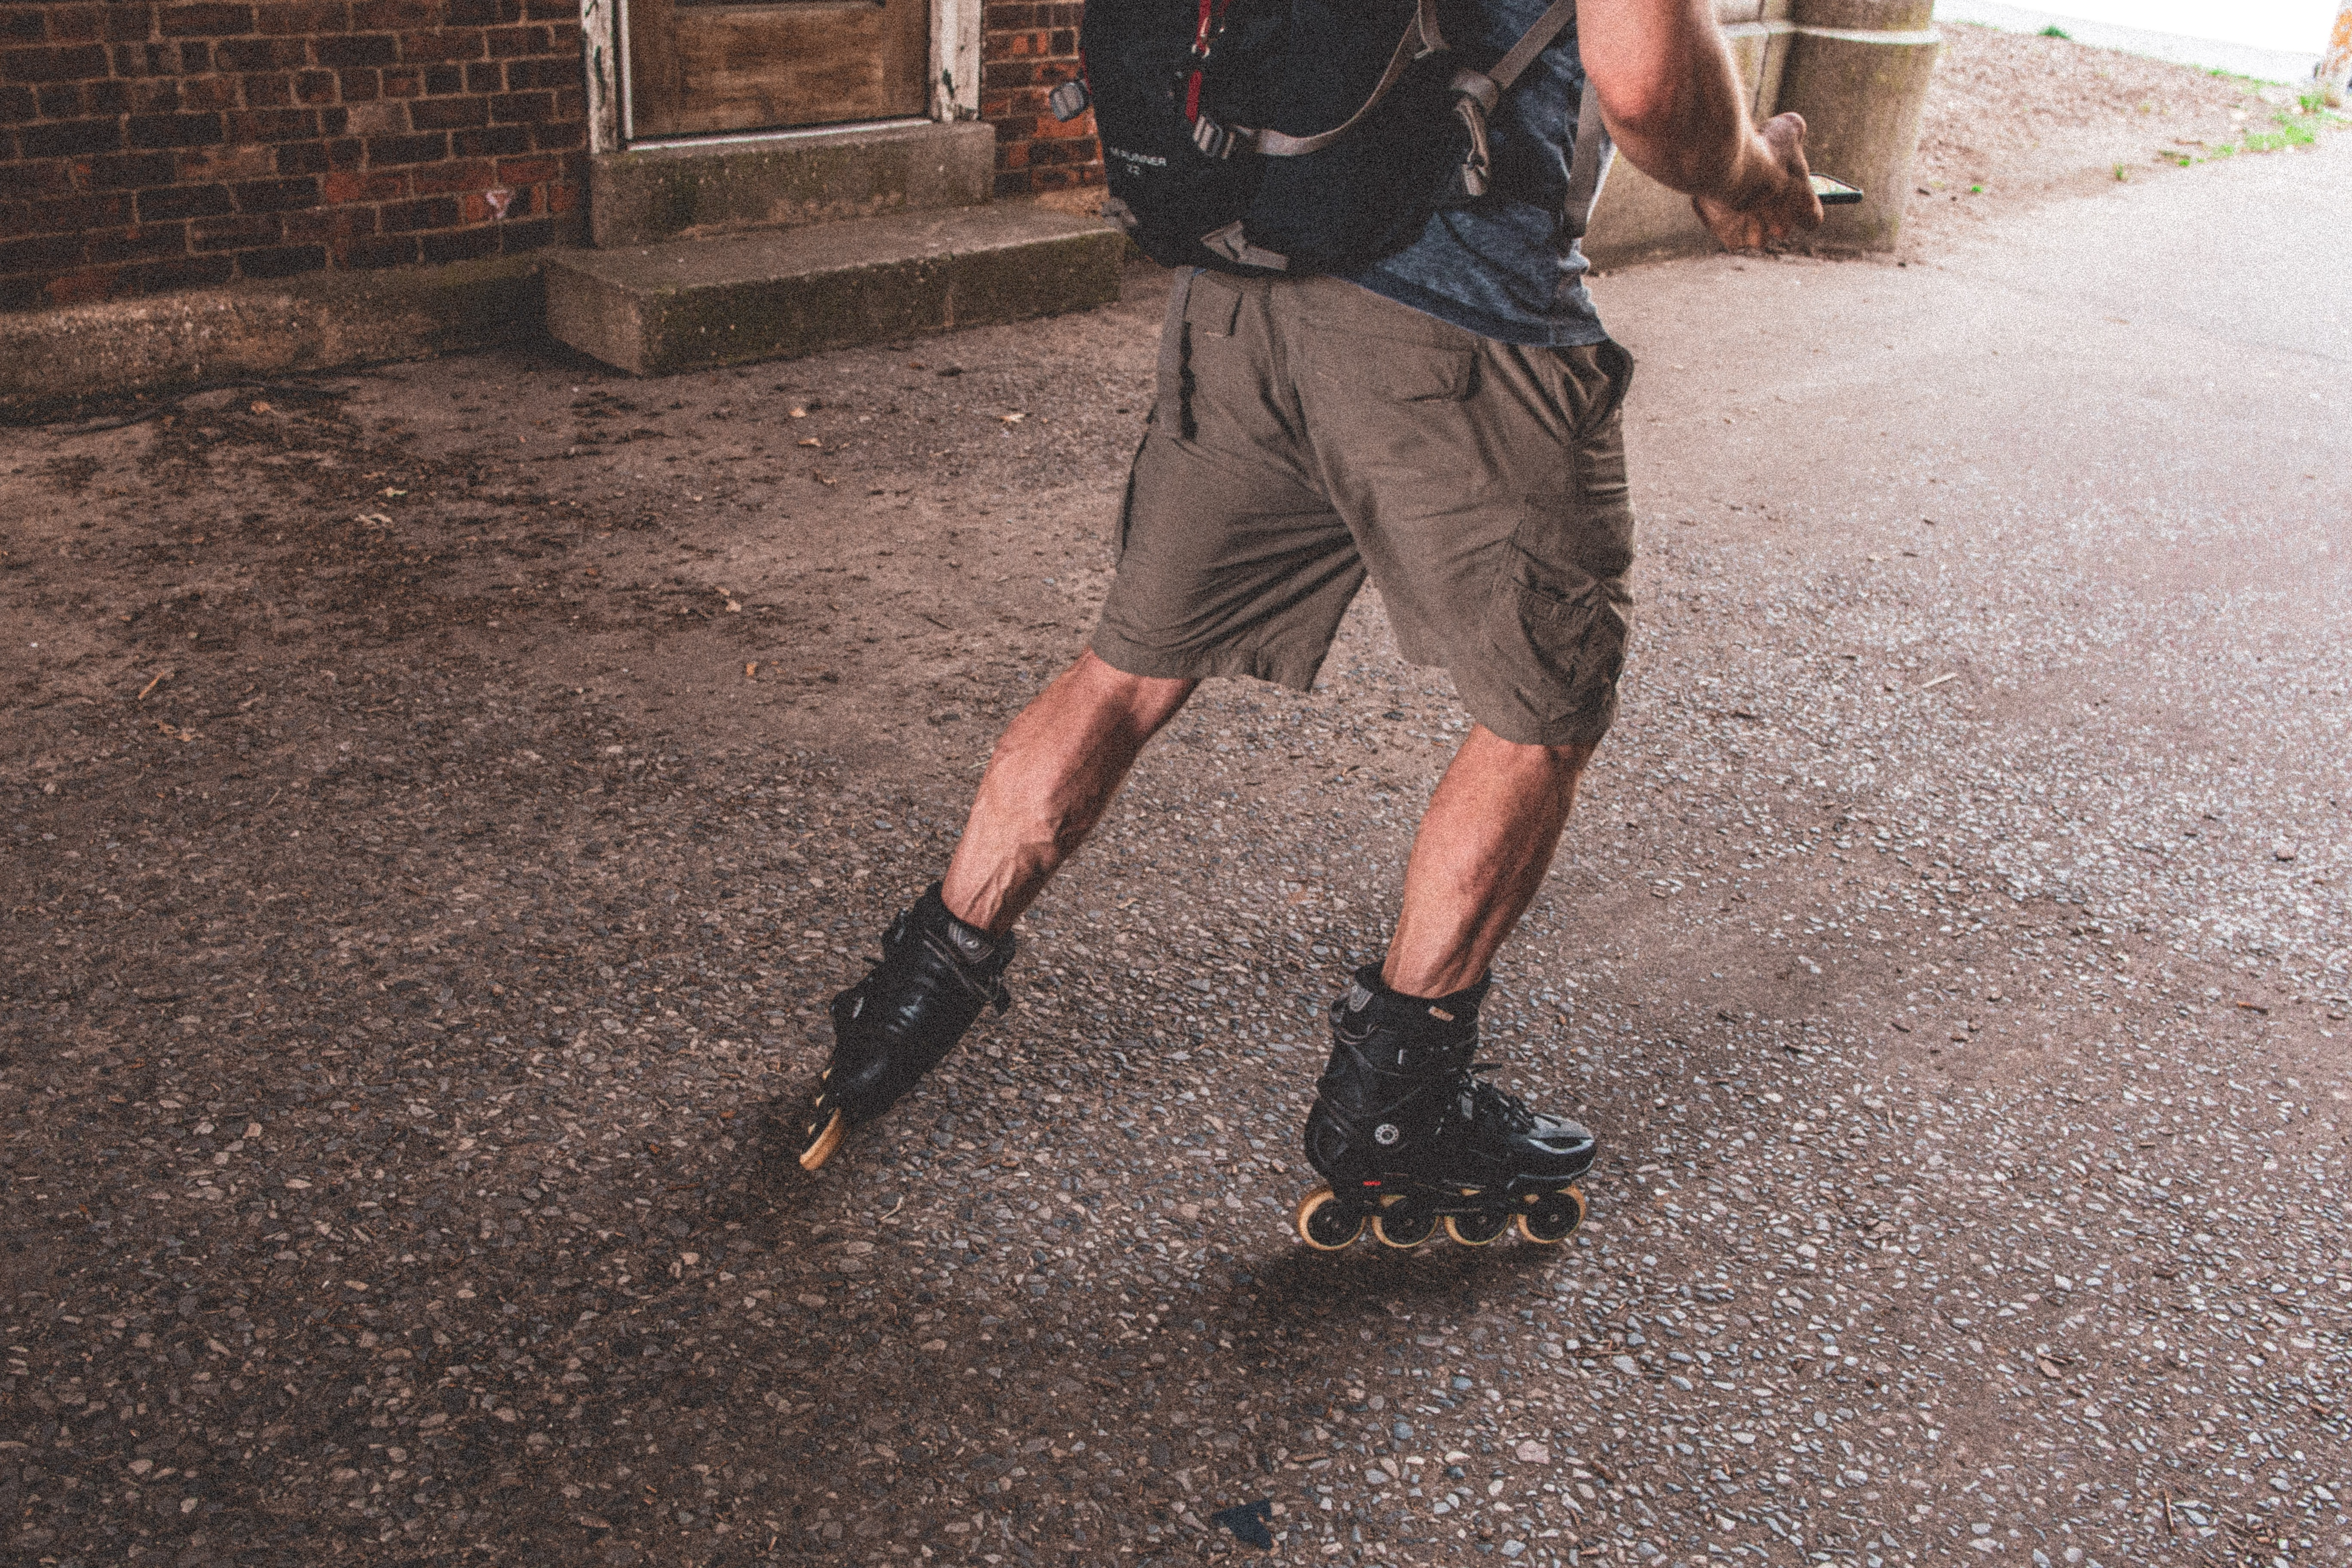 Turn Old Shoes Into Roller Skates